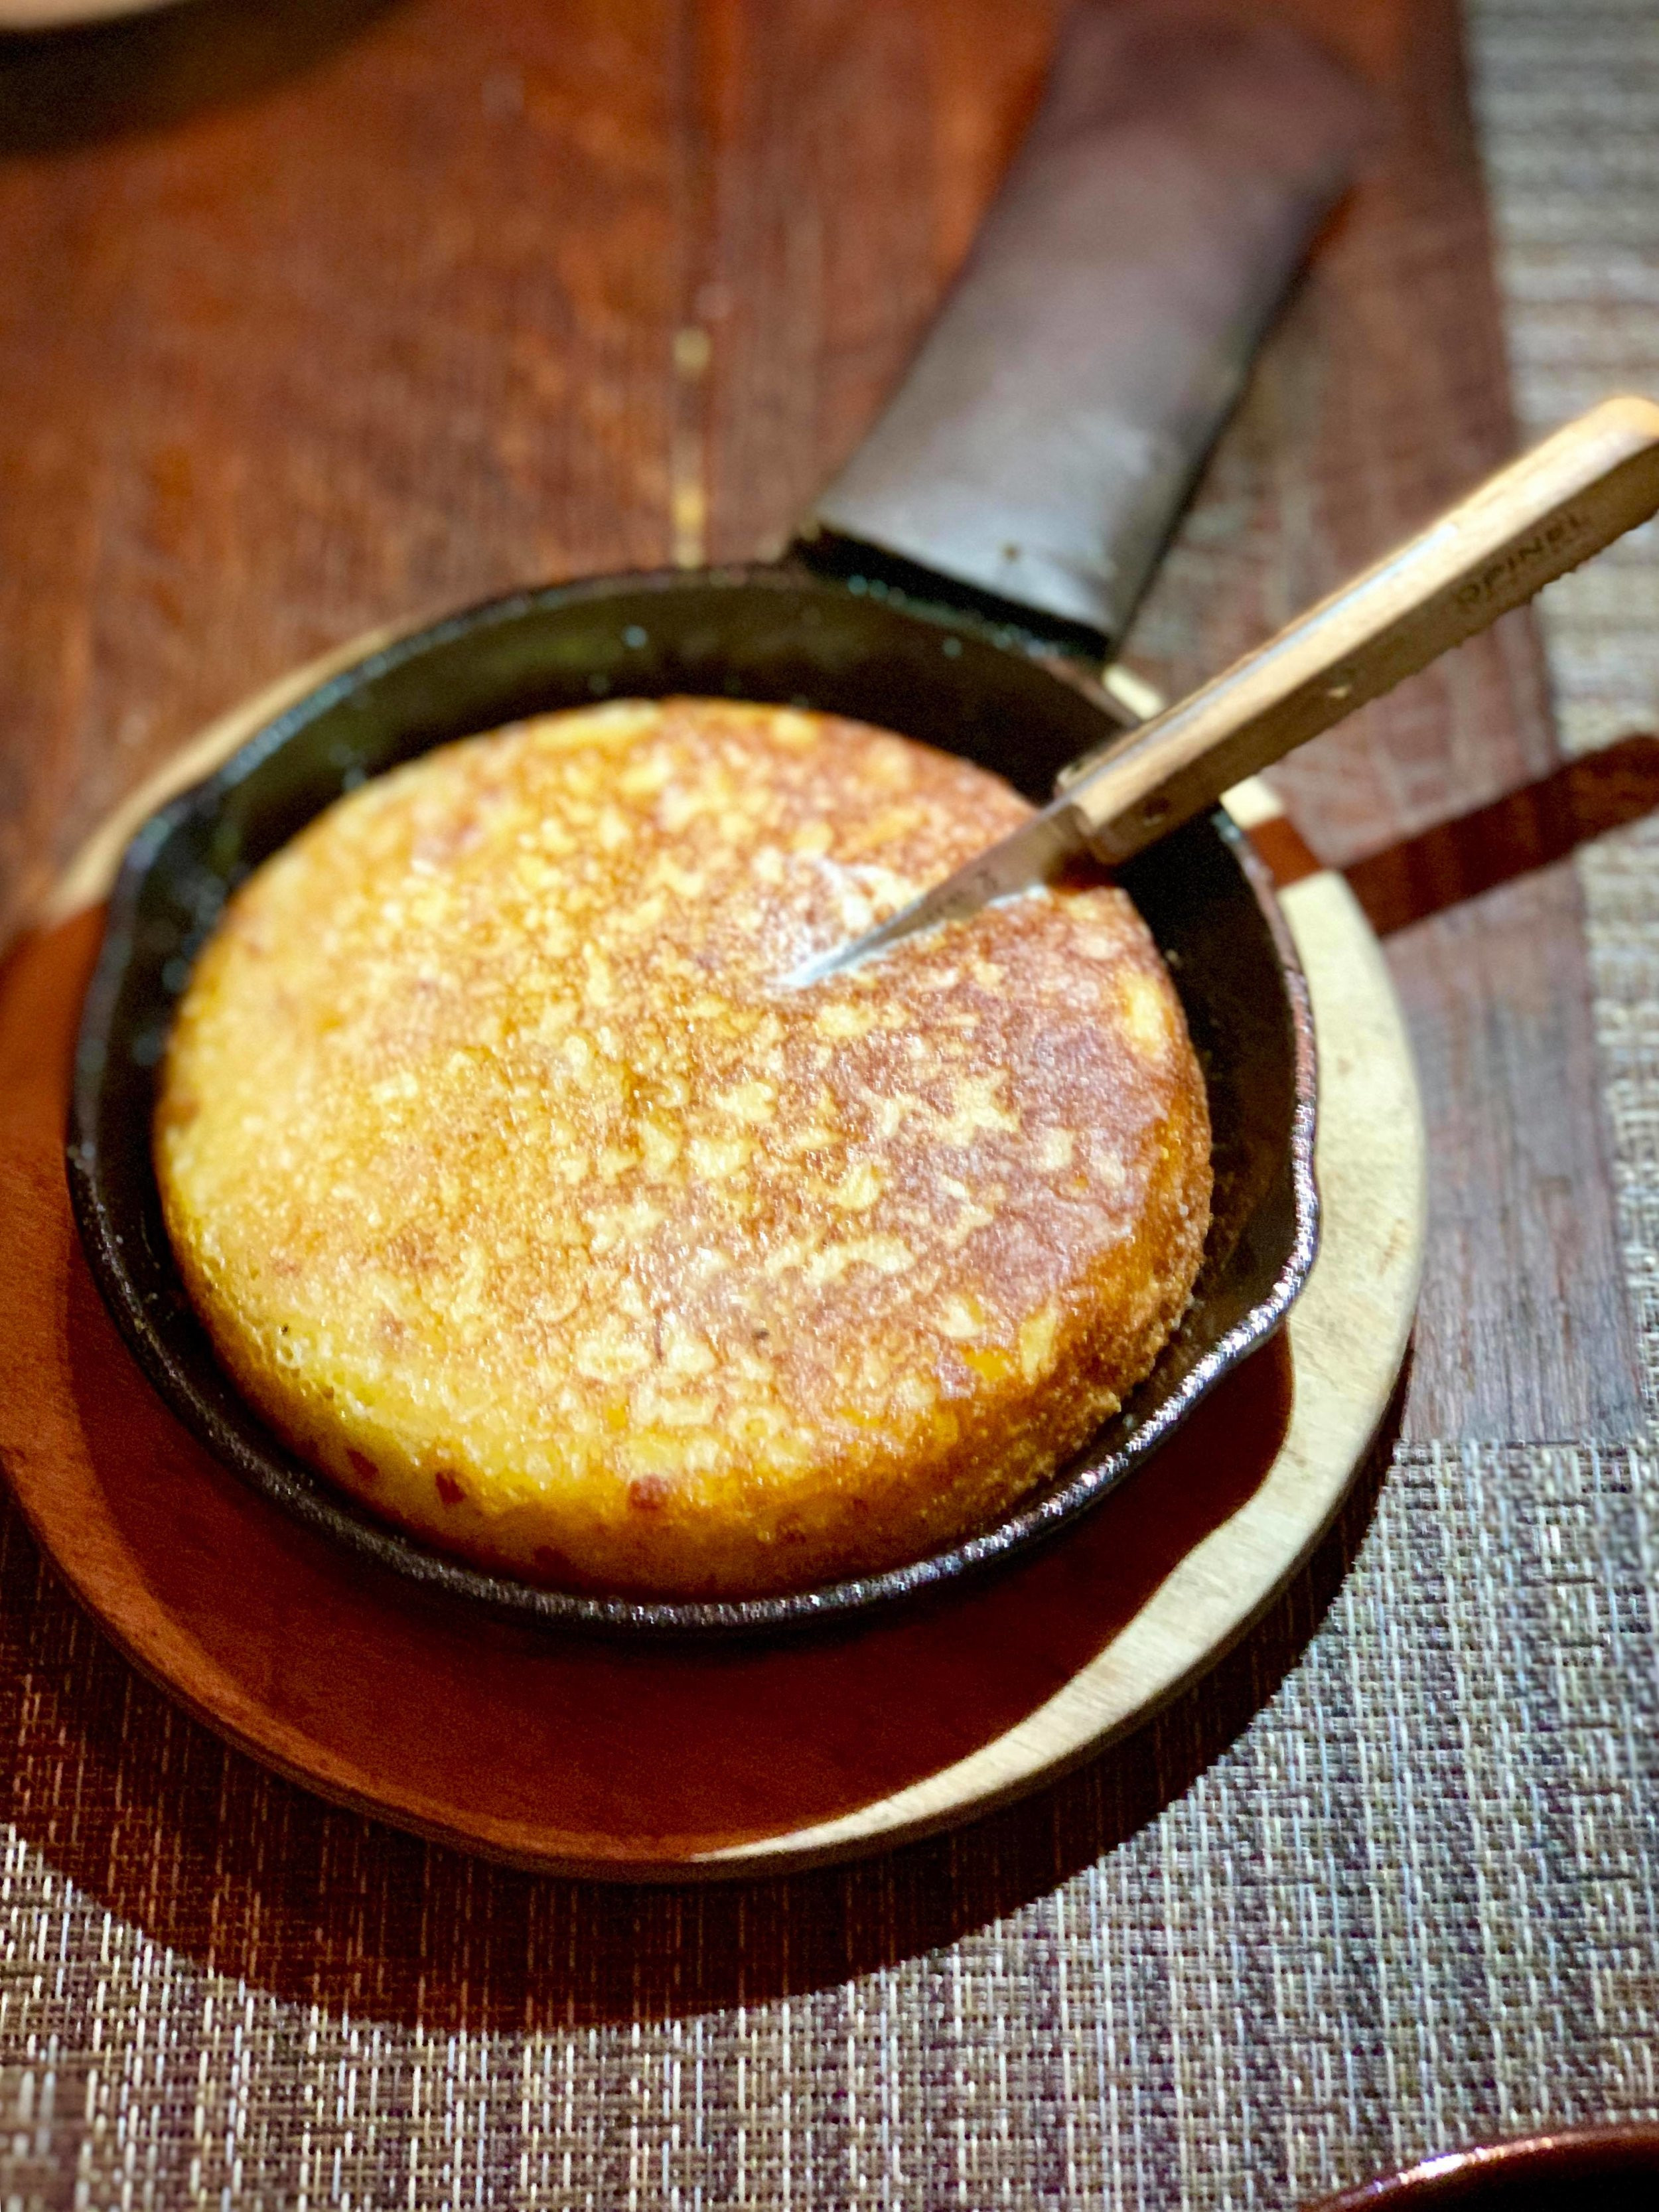 - Cornbread in a skillet to start…